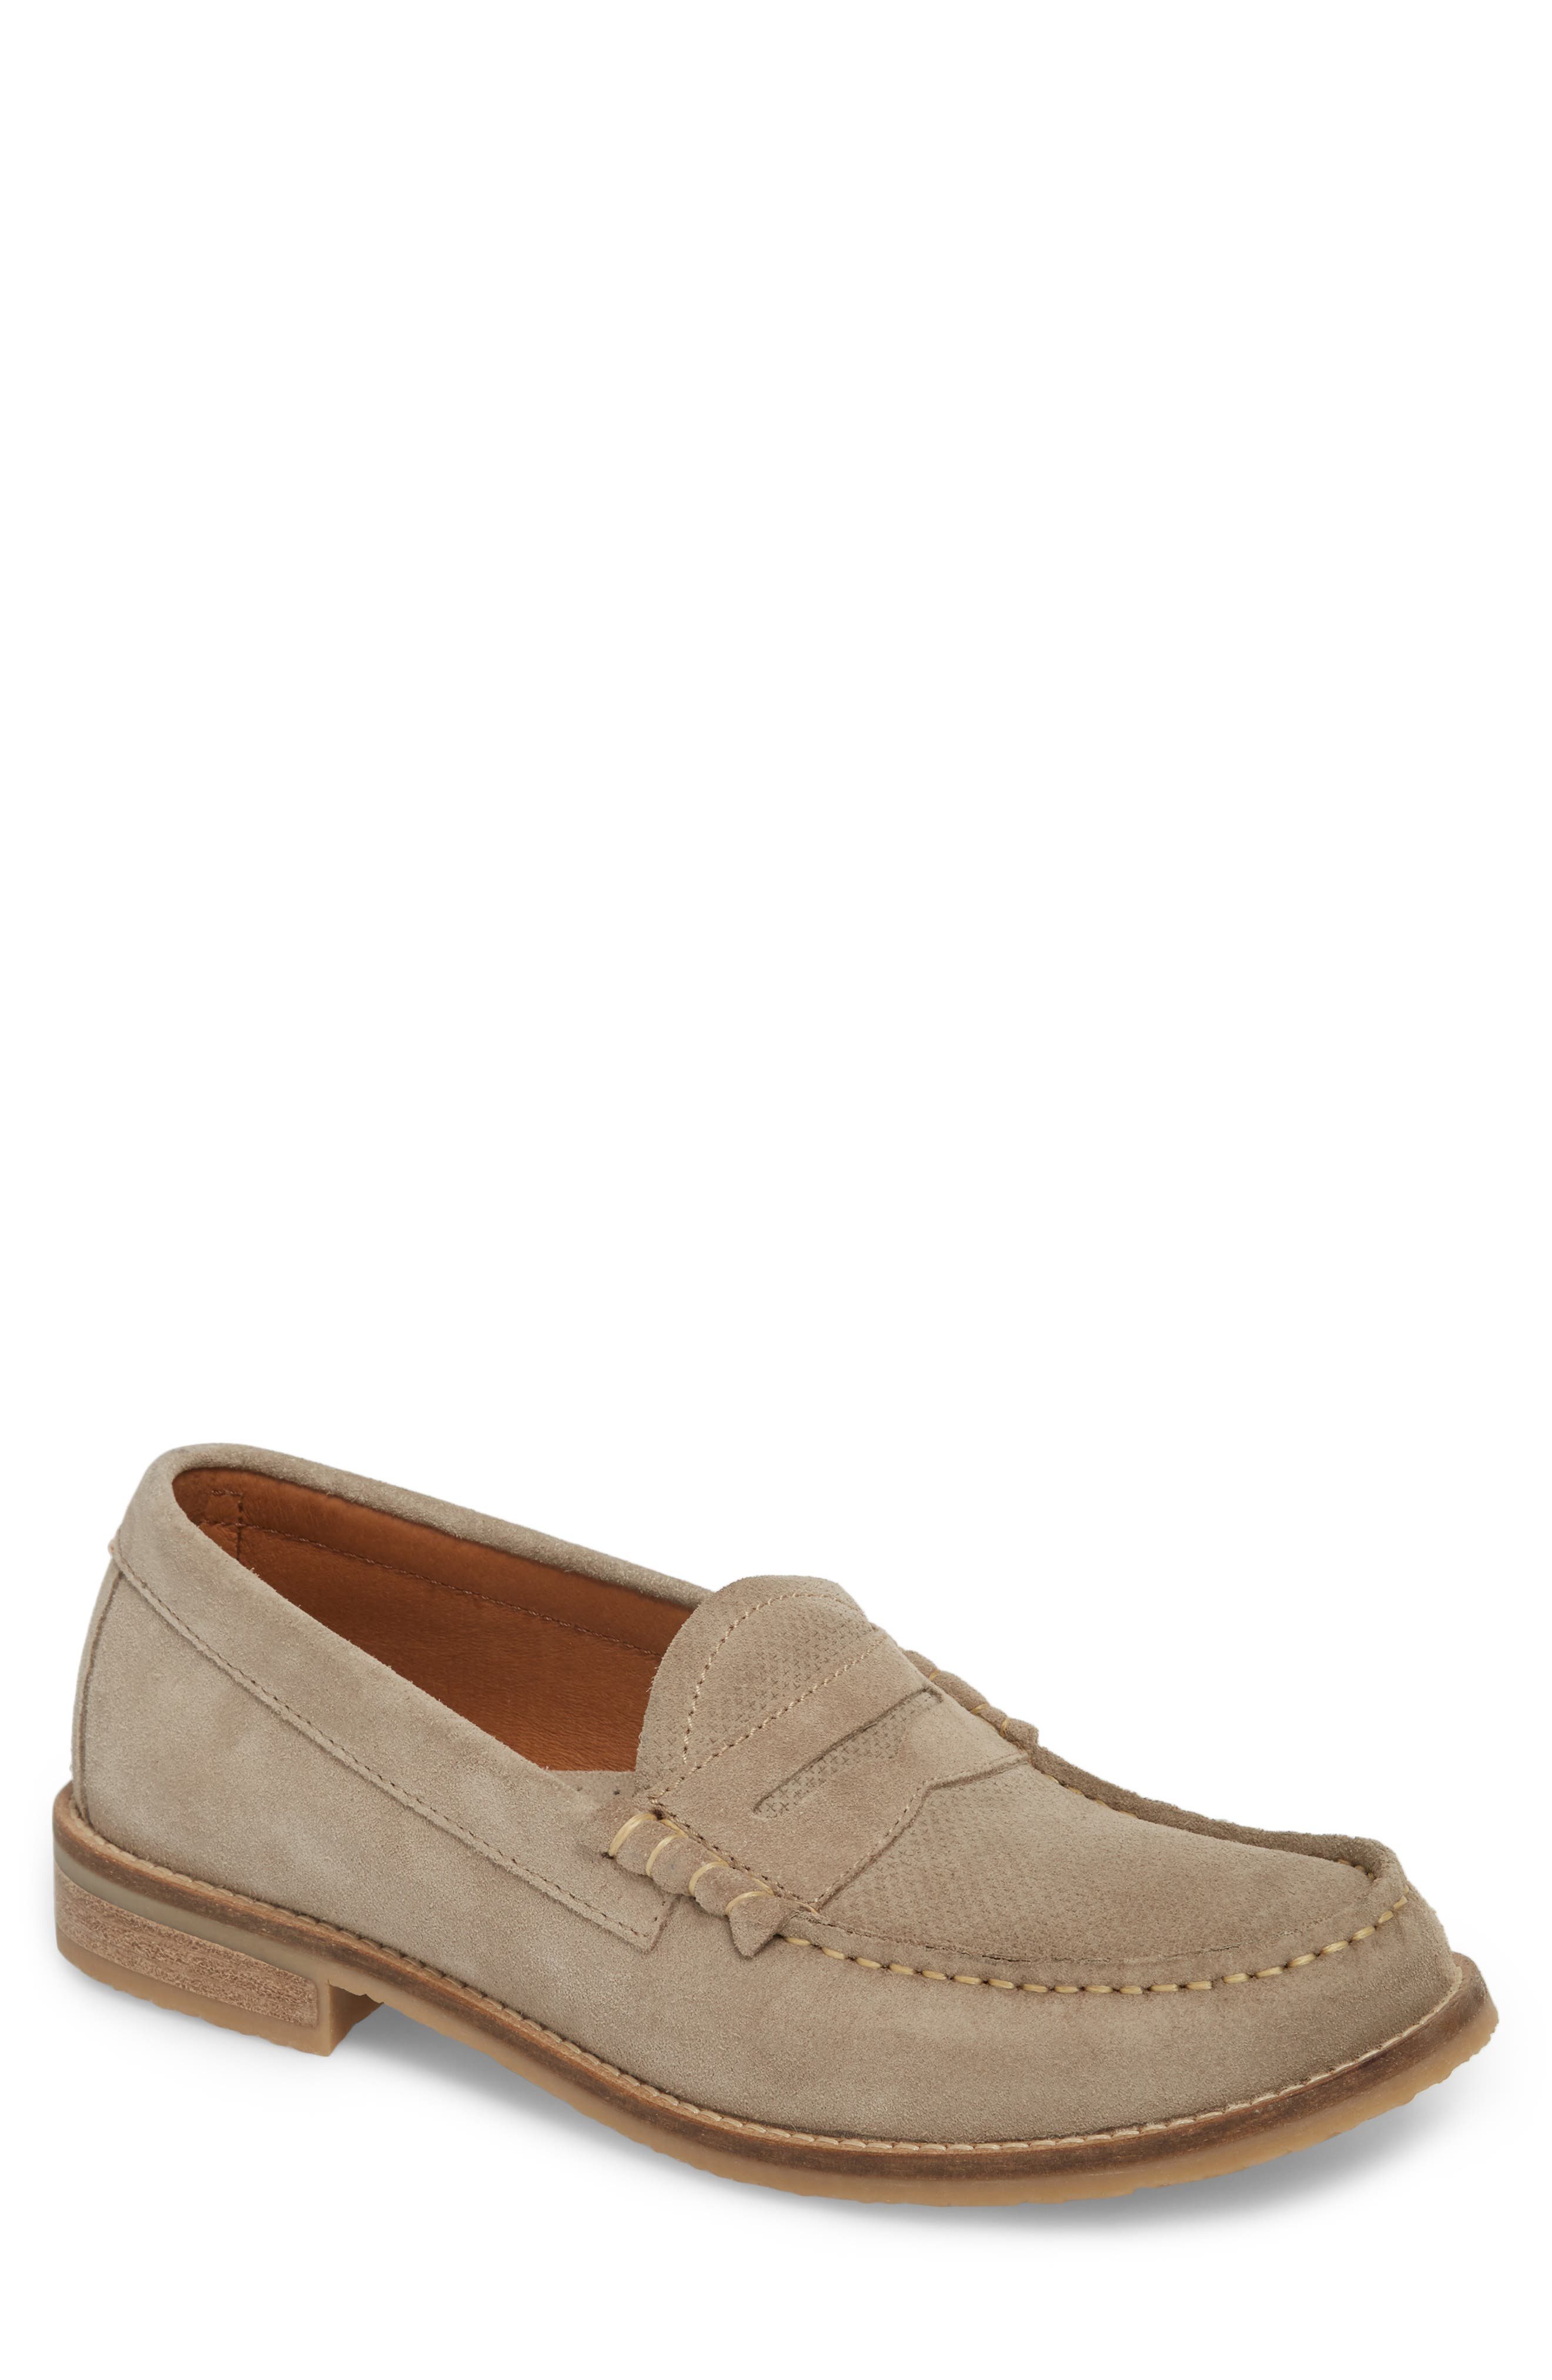 Wayne Textured Penny Loafer,                         Main,                         color, EARTH BEIGE